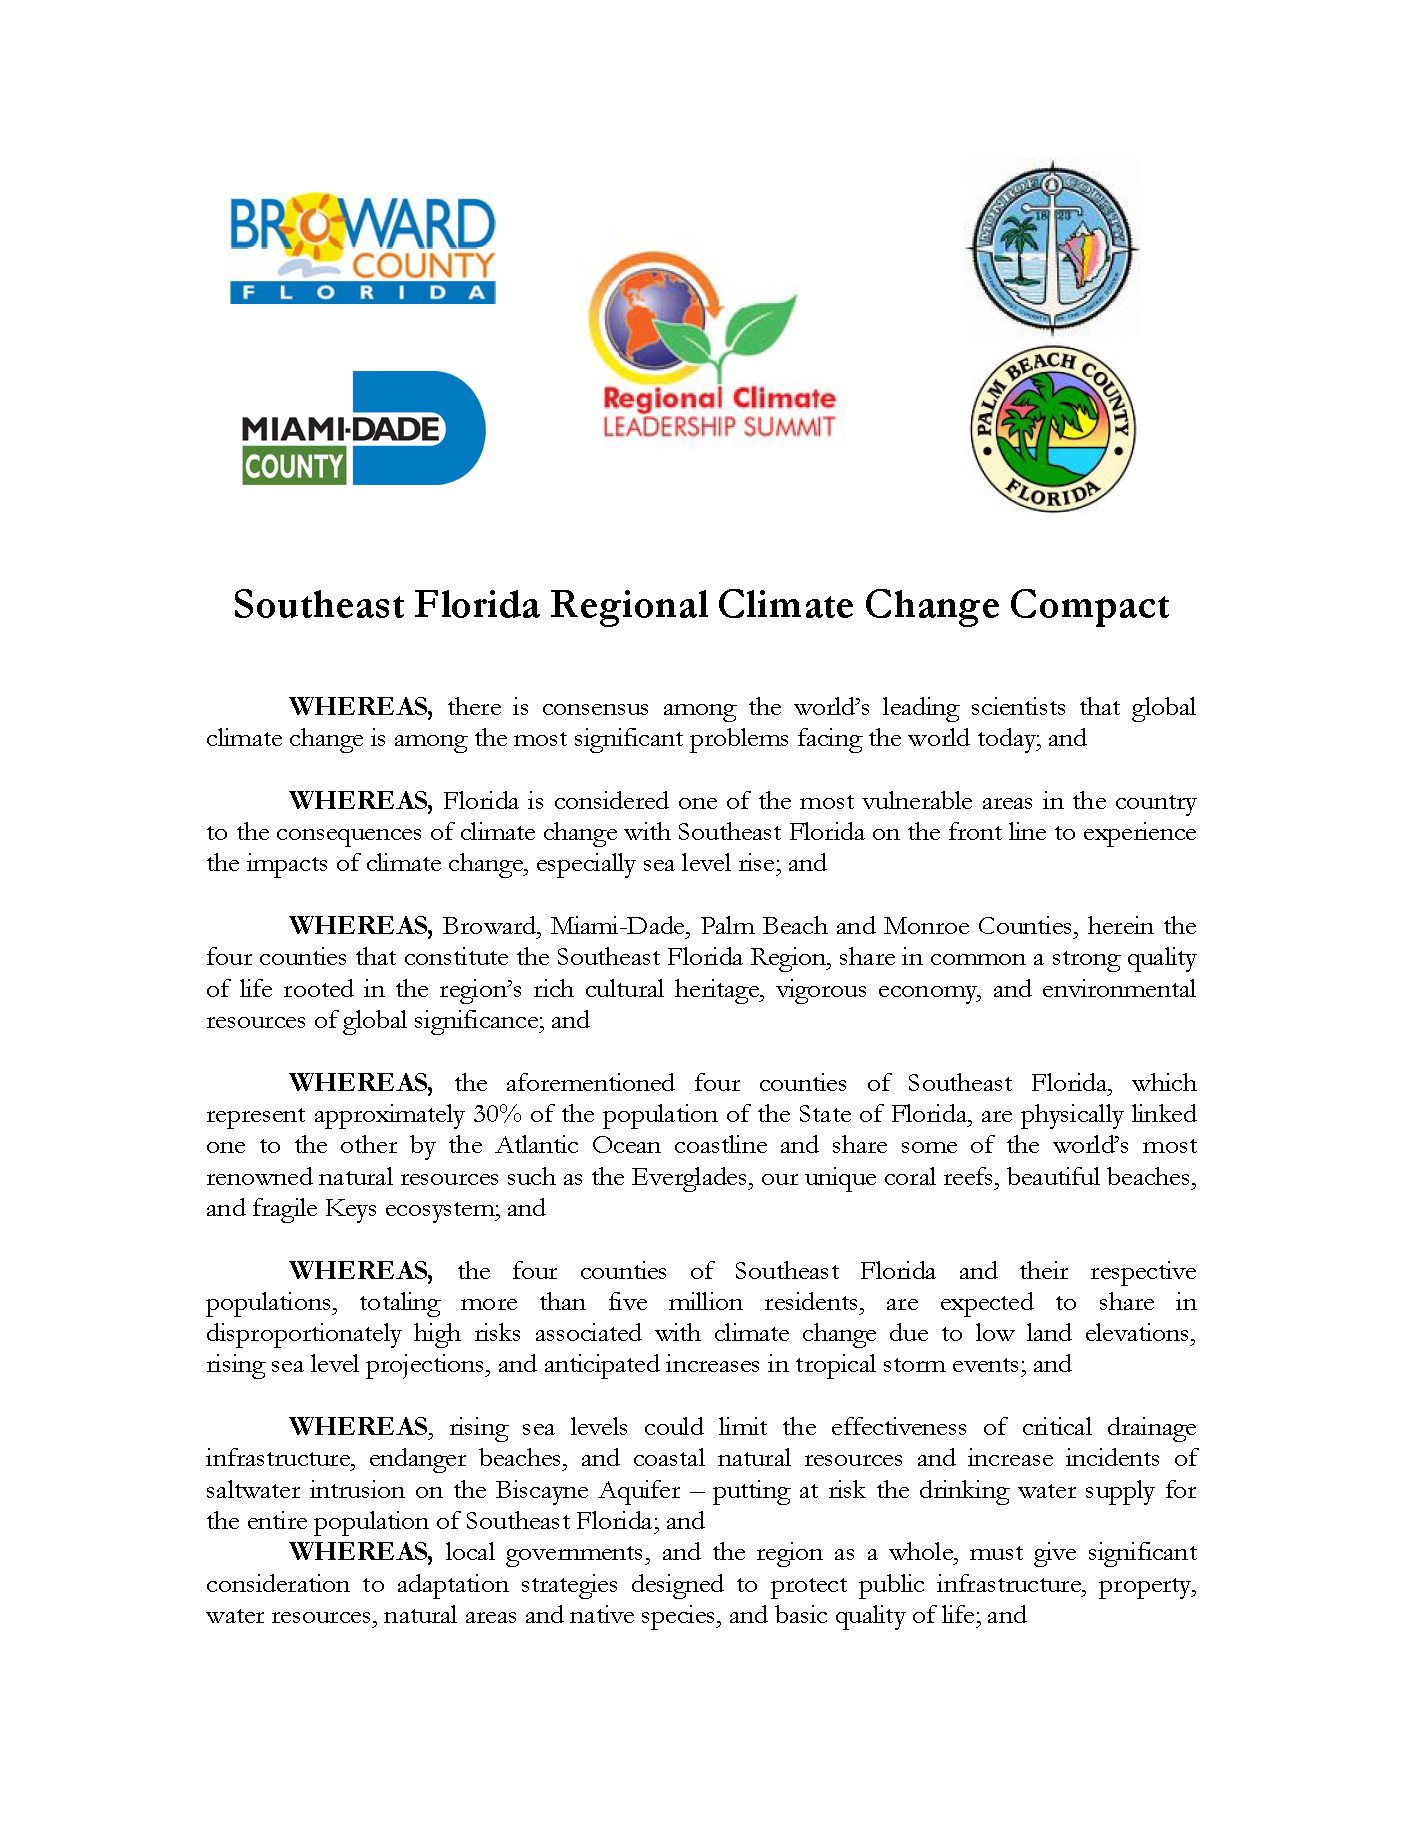 http://www.southeastfloridaclimatecompact.org//wp-content/uploads/2014/09/compactimage-Page-1.png